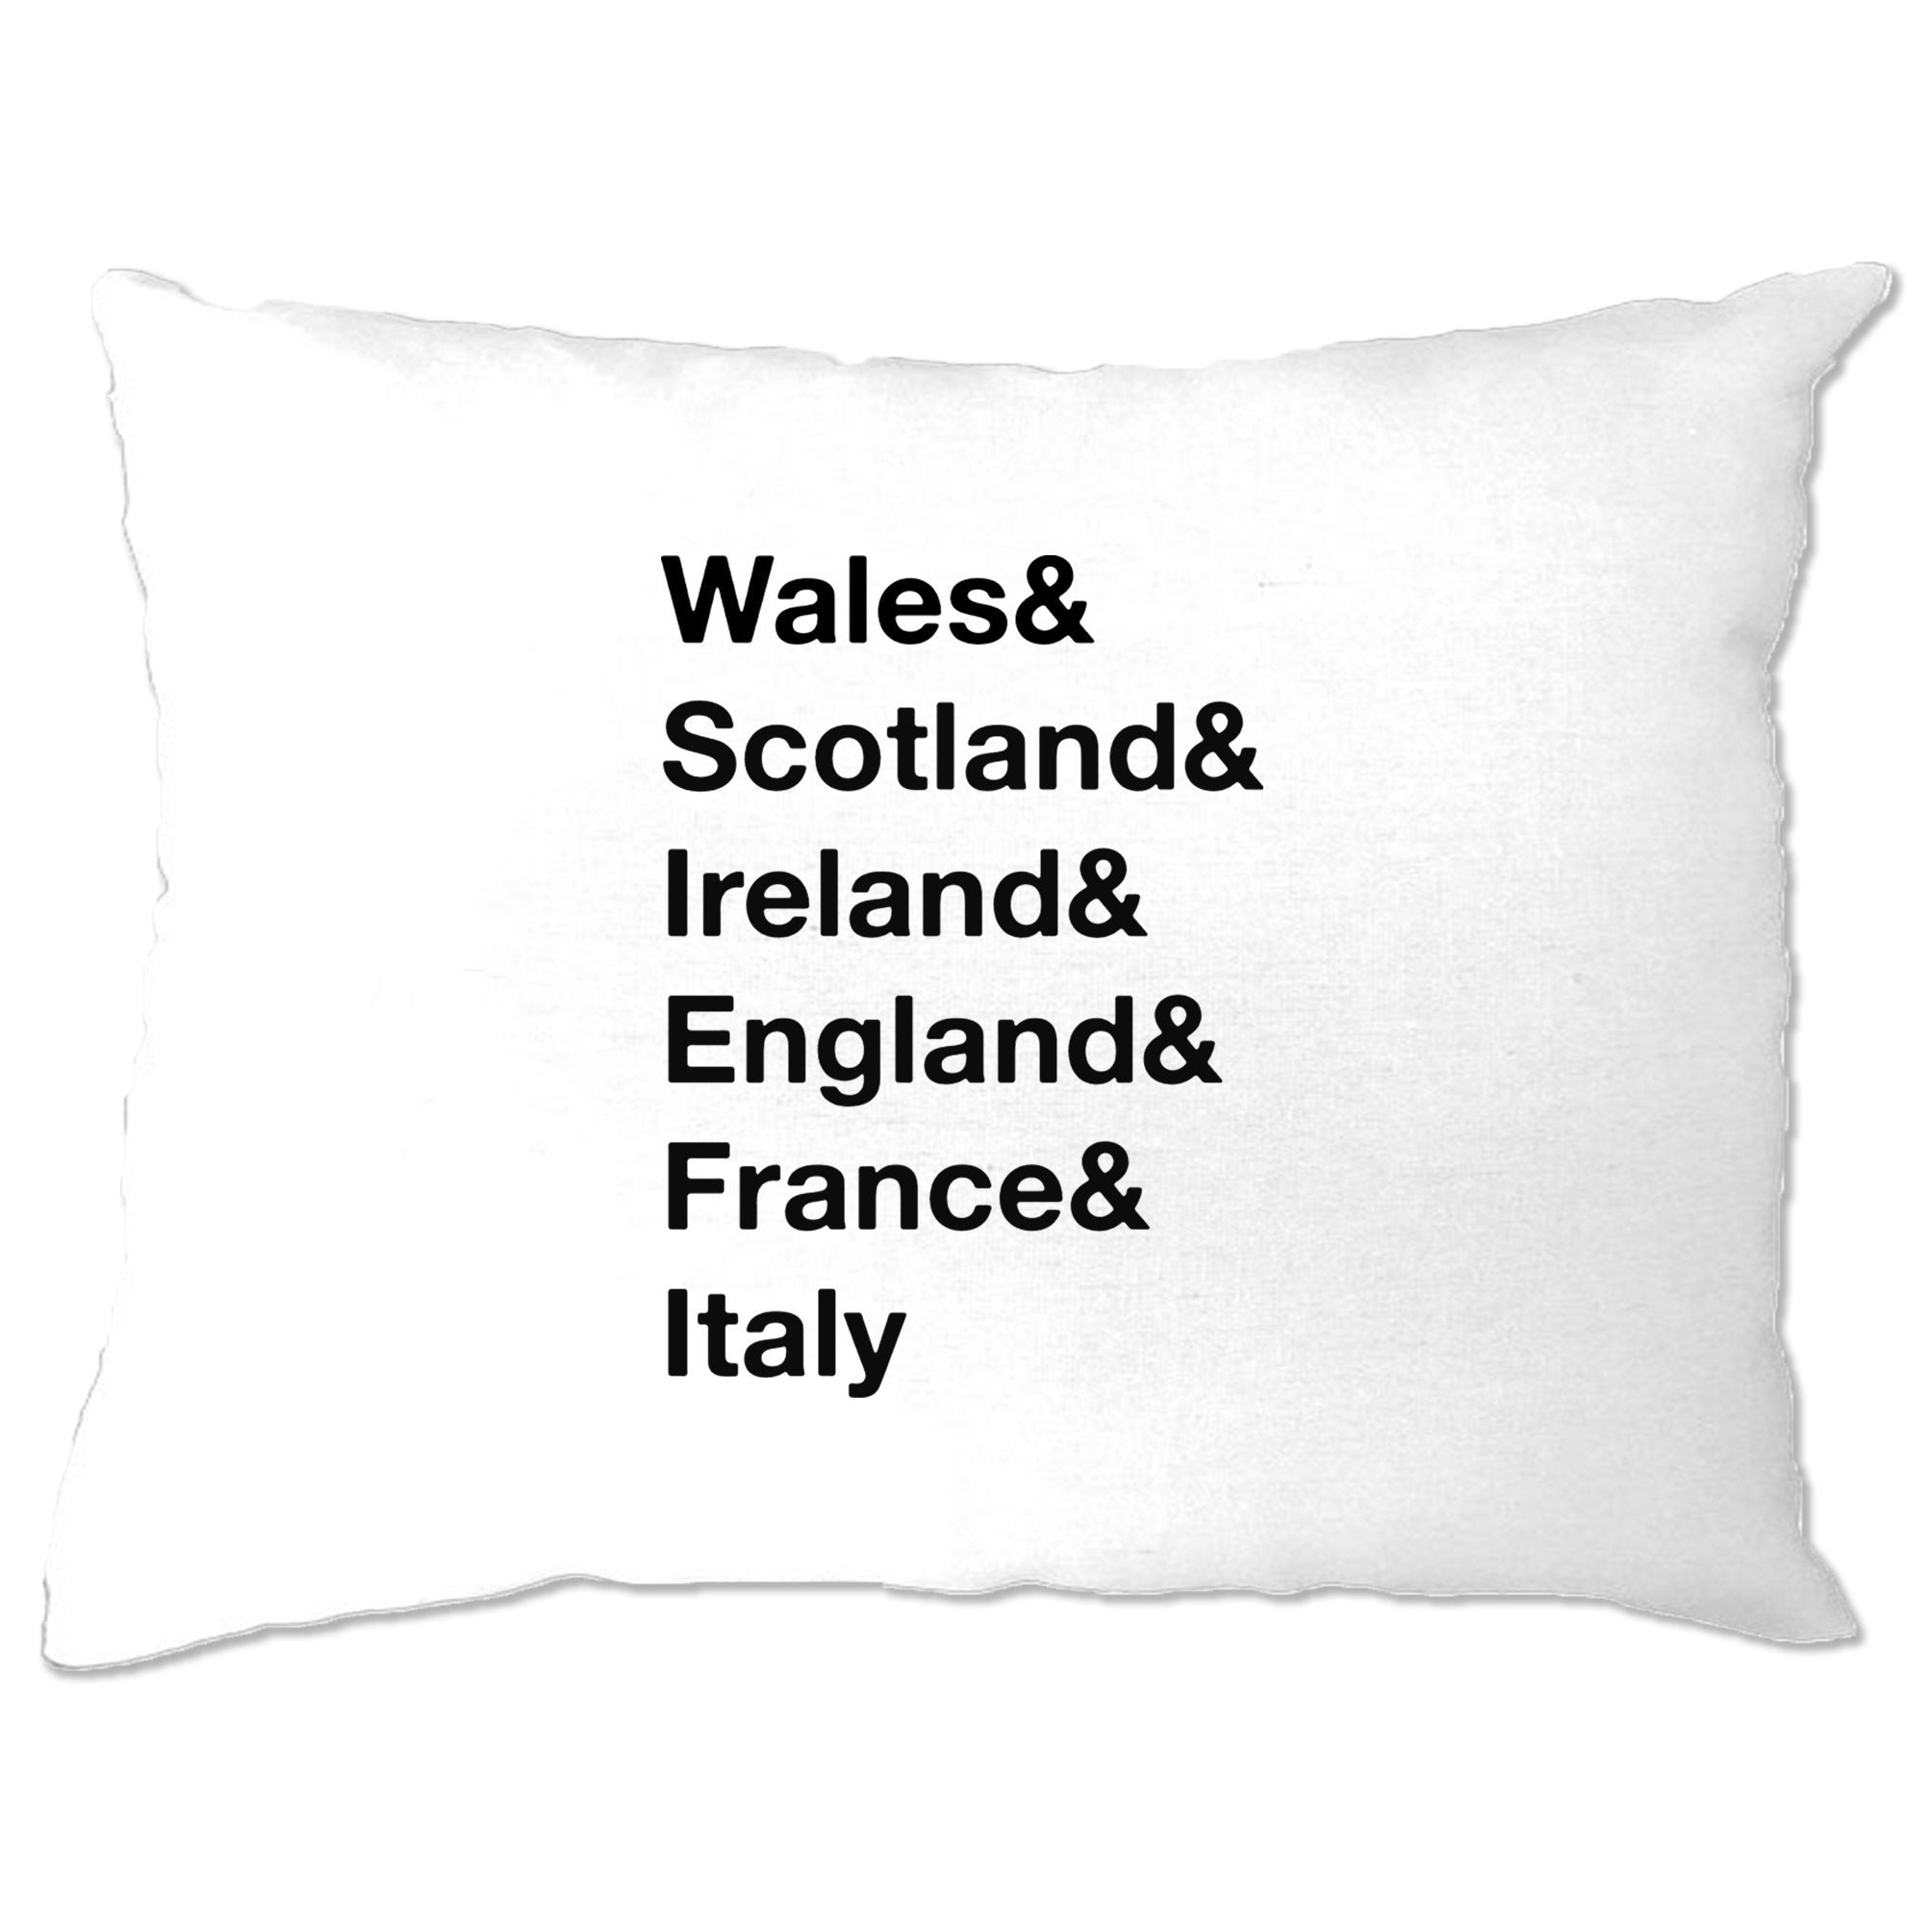 The Six Nations Pillow Case Wales, Scotland, Ireland